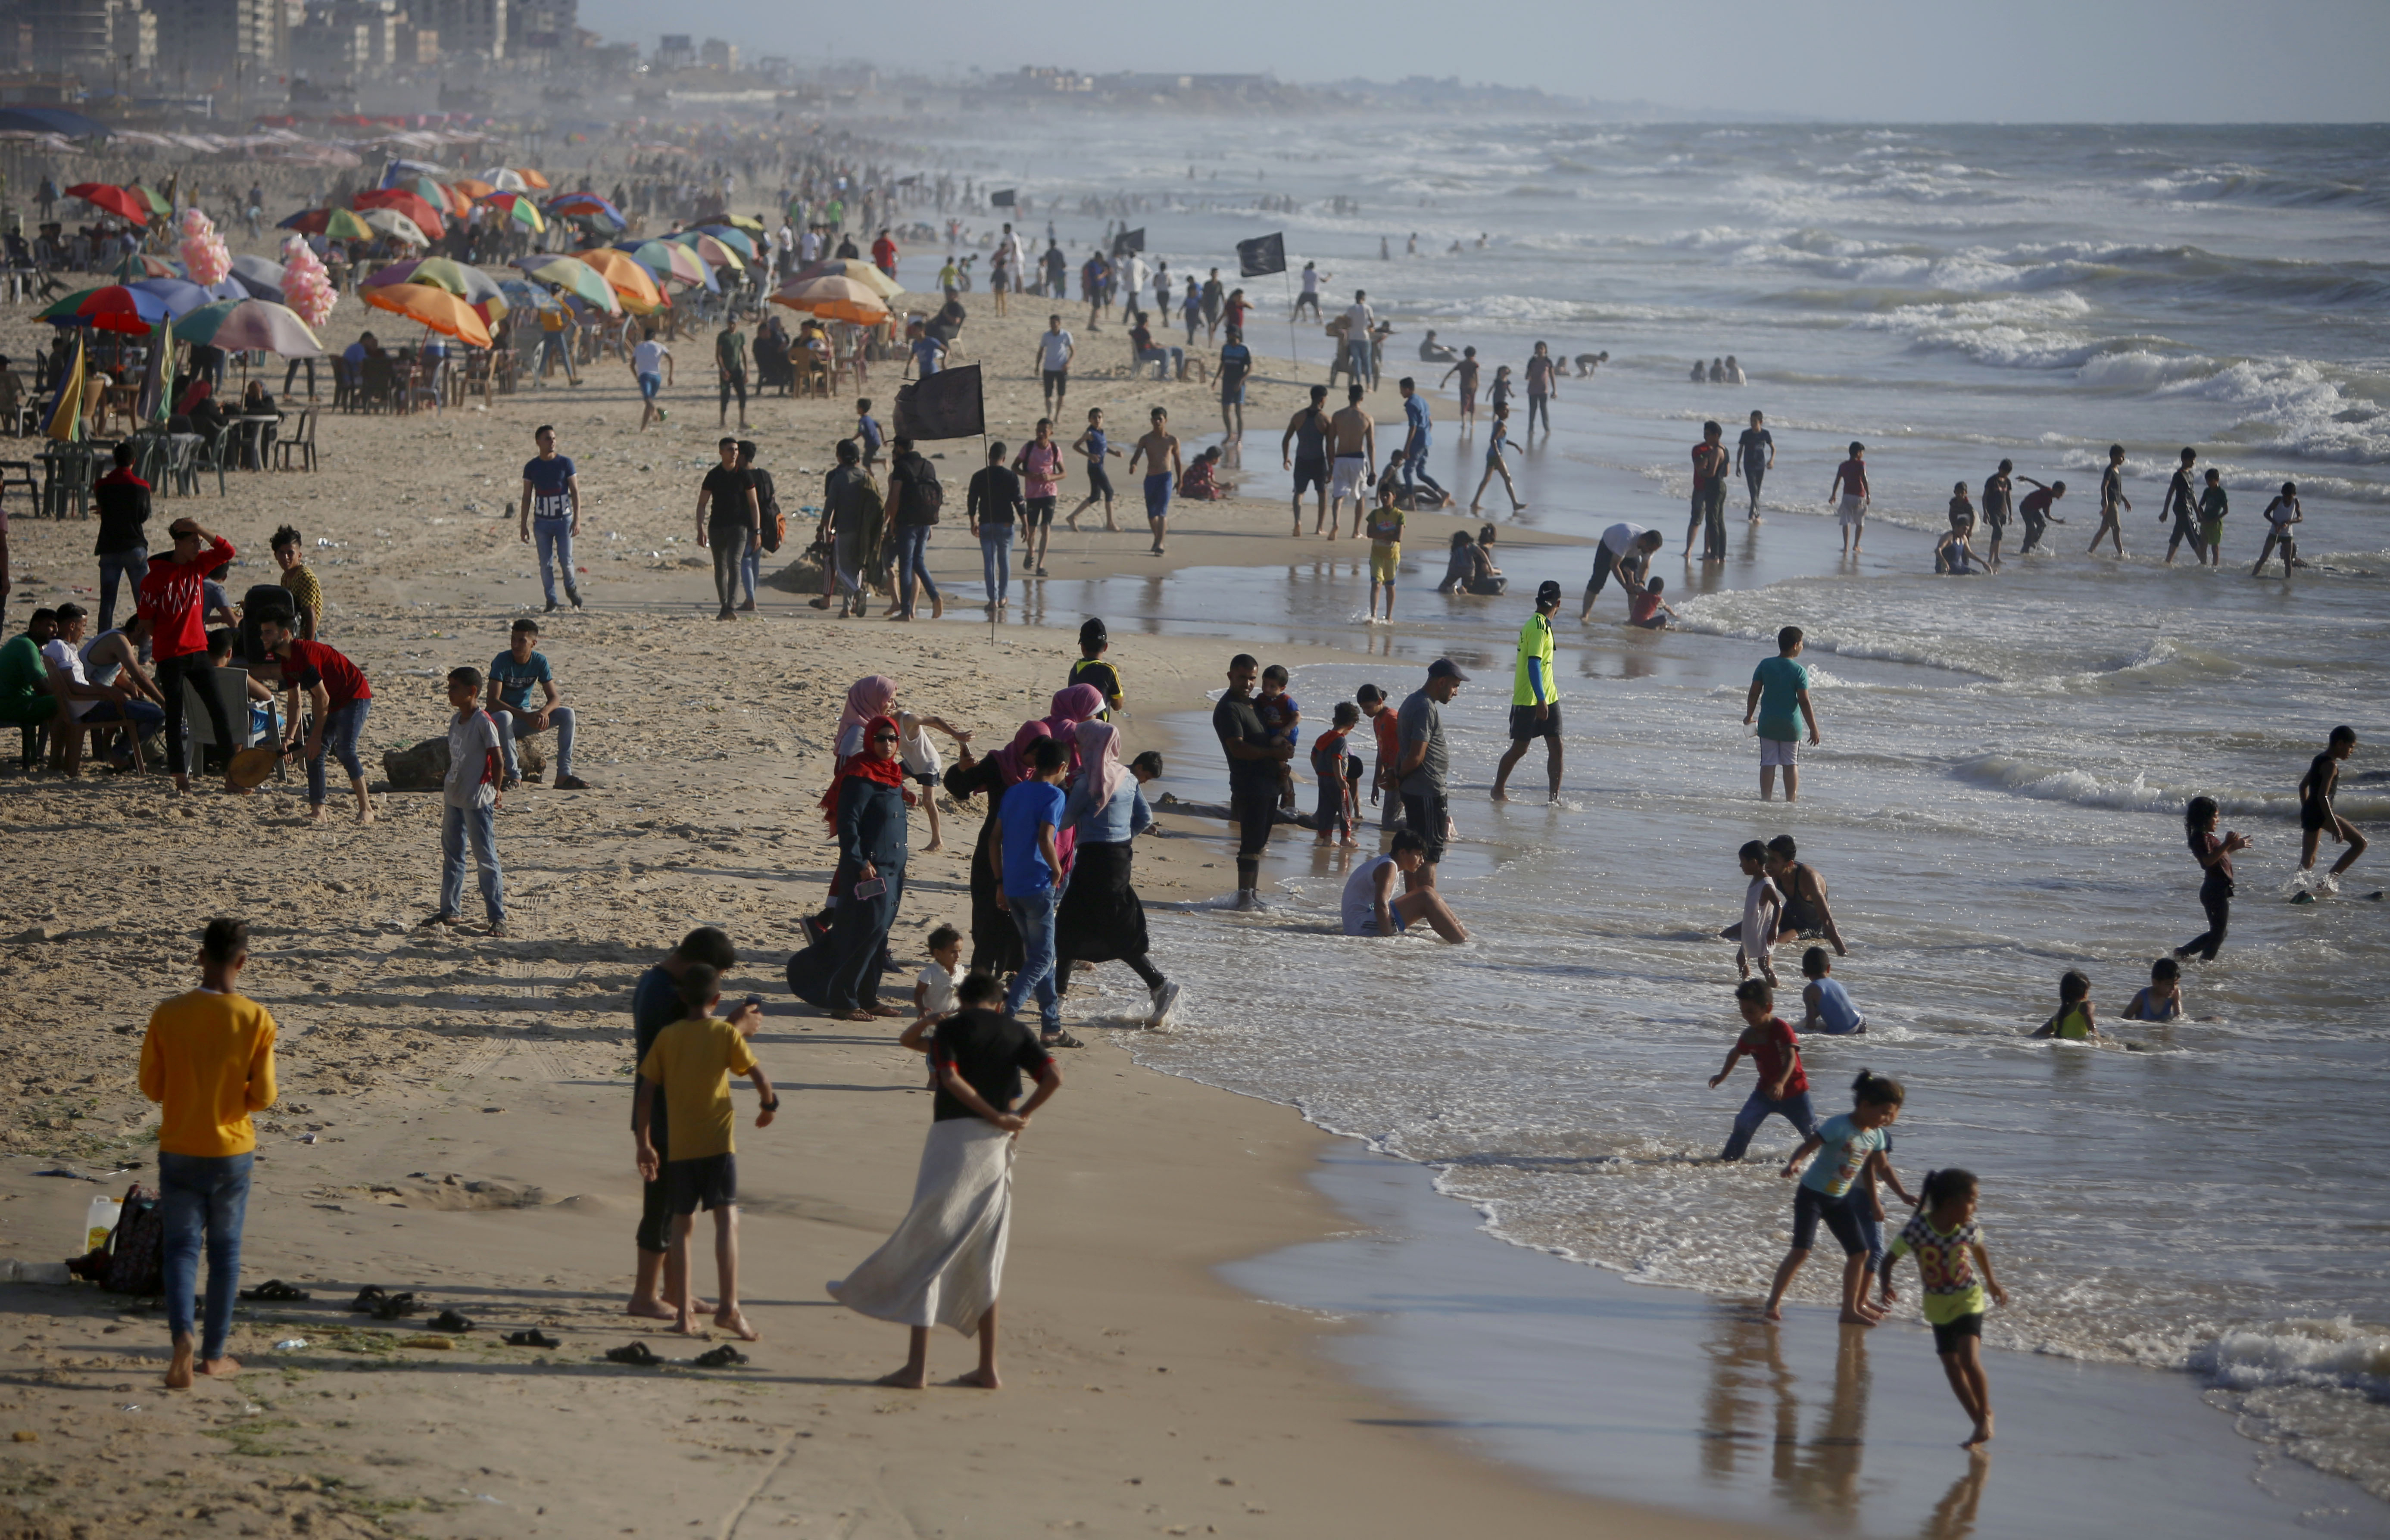 Palestinians enjoy the beach of the Mediterranean sea in Gaza City, Friday, June 19, 2020. The beach is one of the few open public spaces in this densely populated city. (AP Photo/Hatem Moussa)